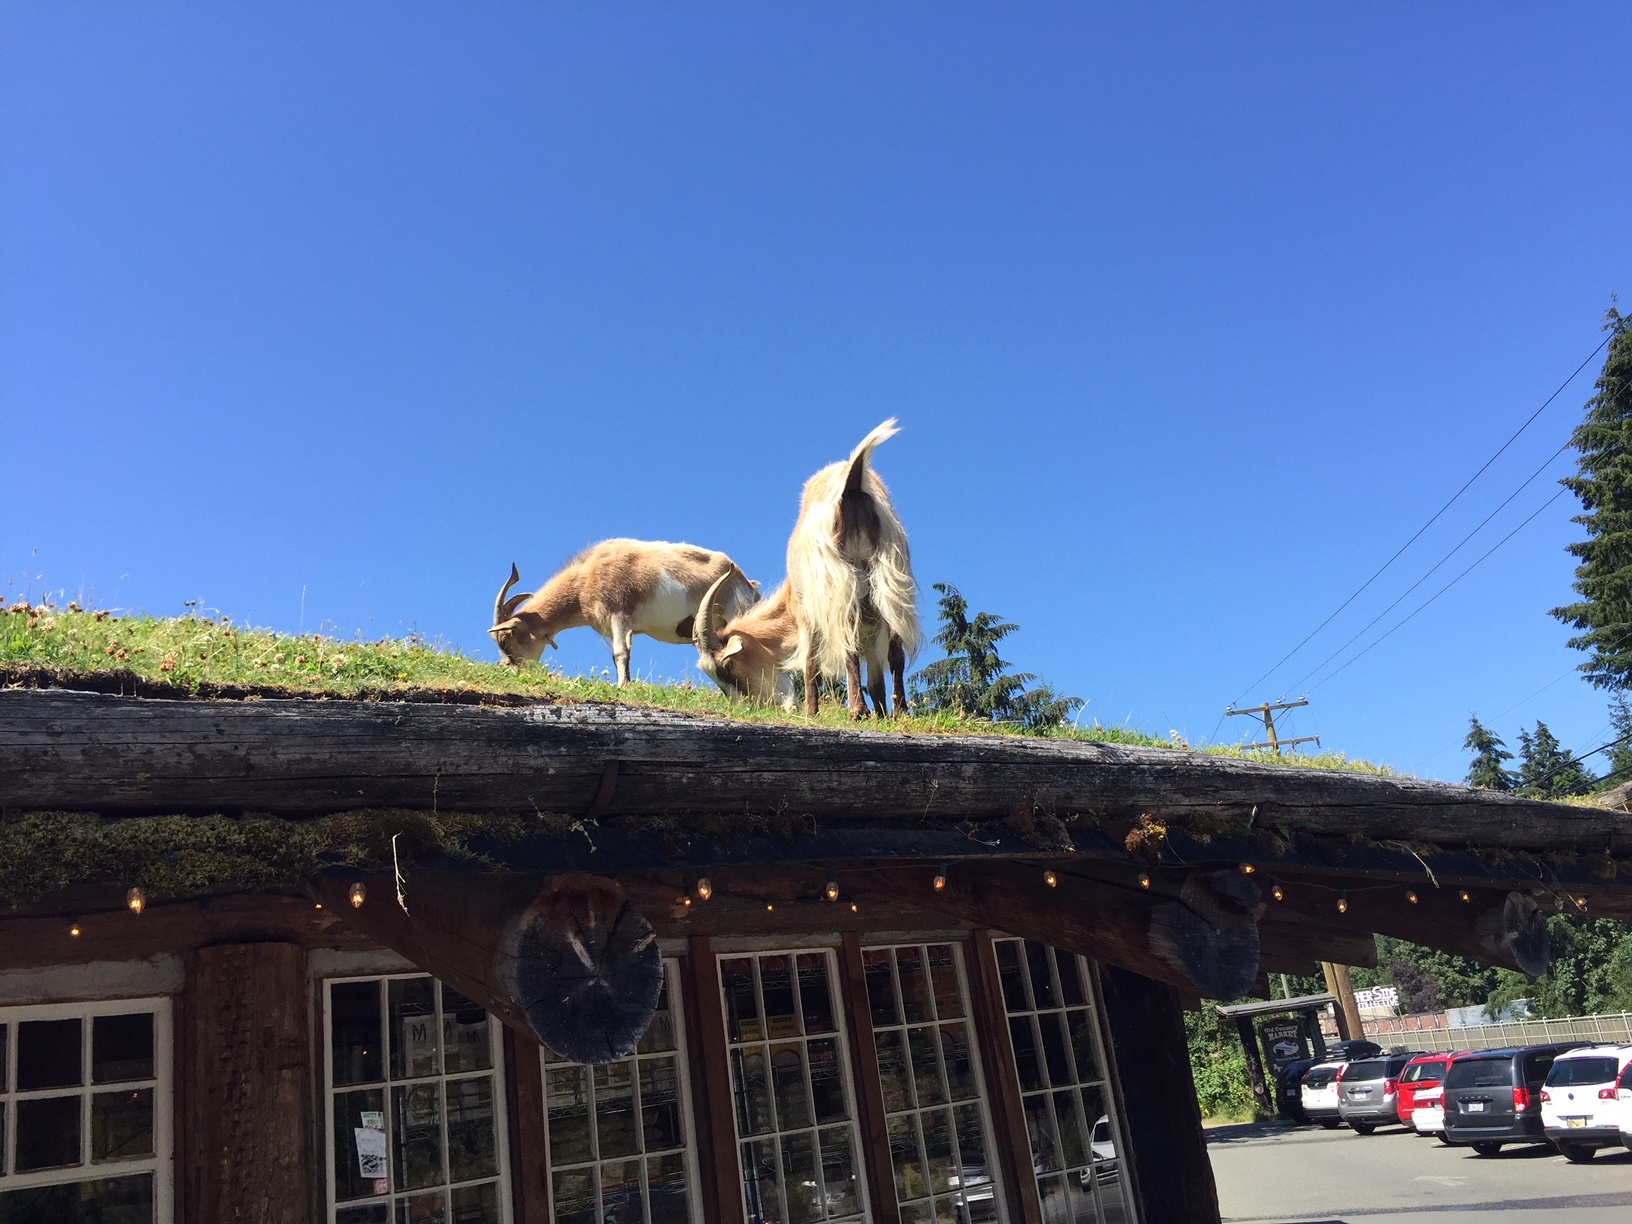 goats grazing on a roof